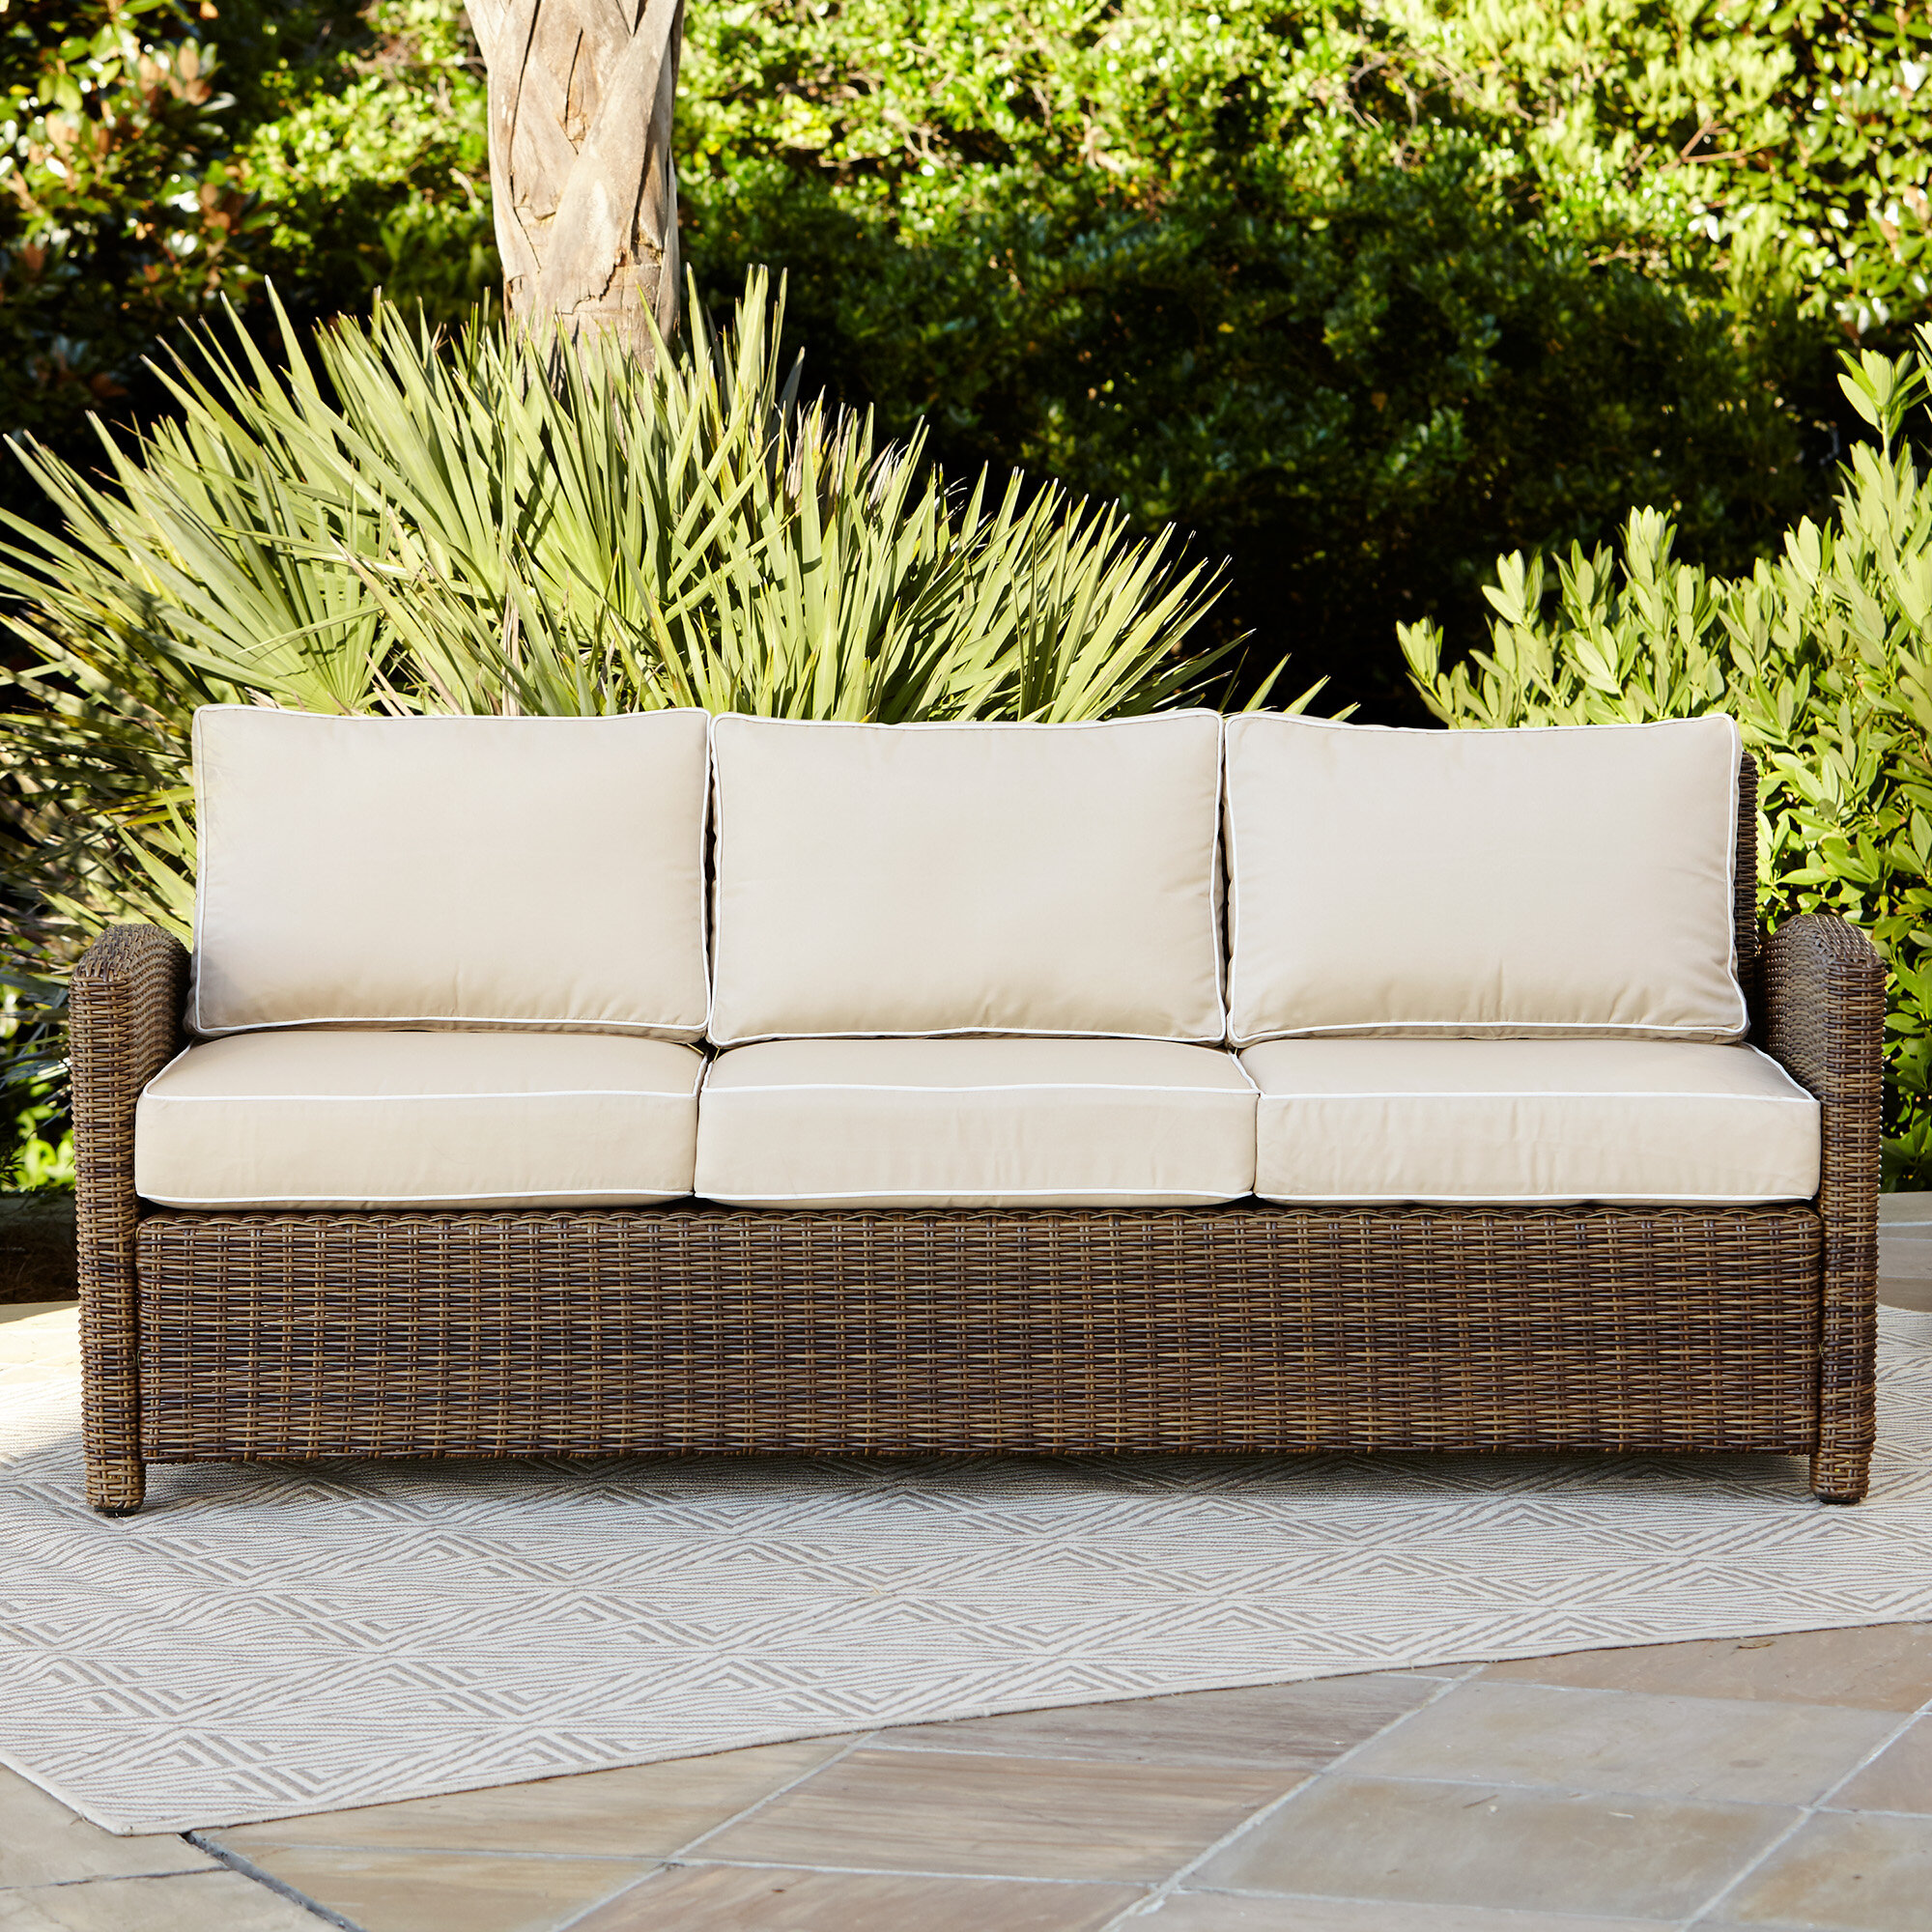 Magnificent Lawson Patio Sofa With Cushions Cjindustries Chair Design For Home Cjindustriesco